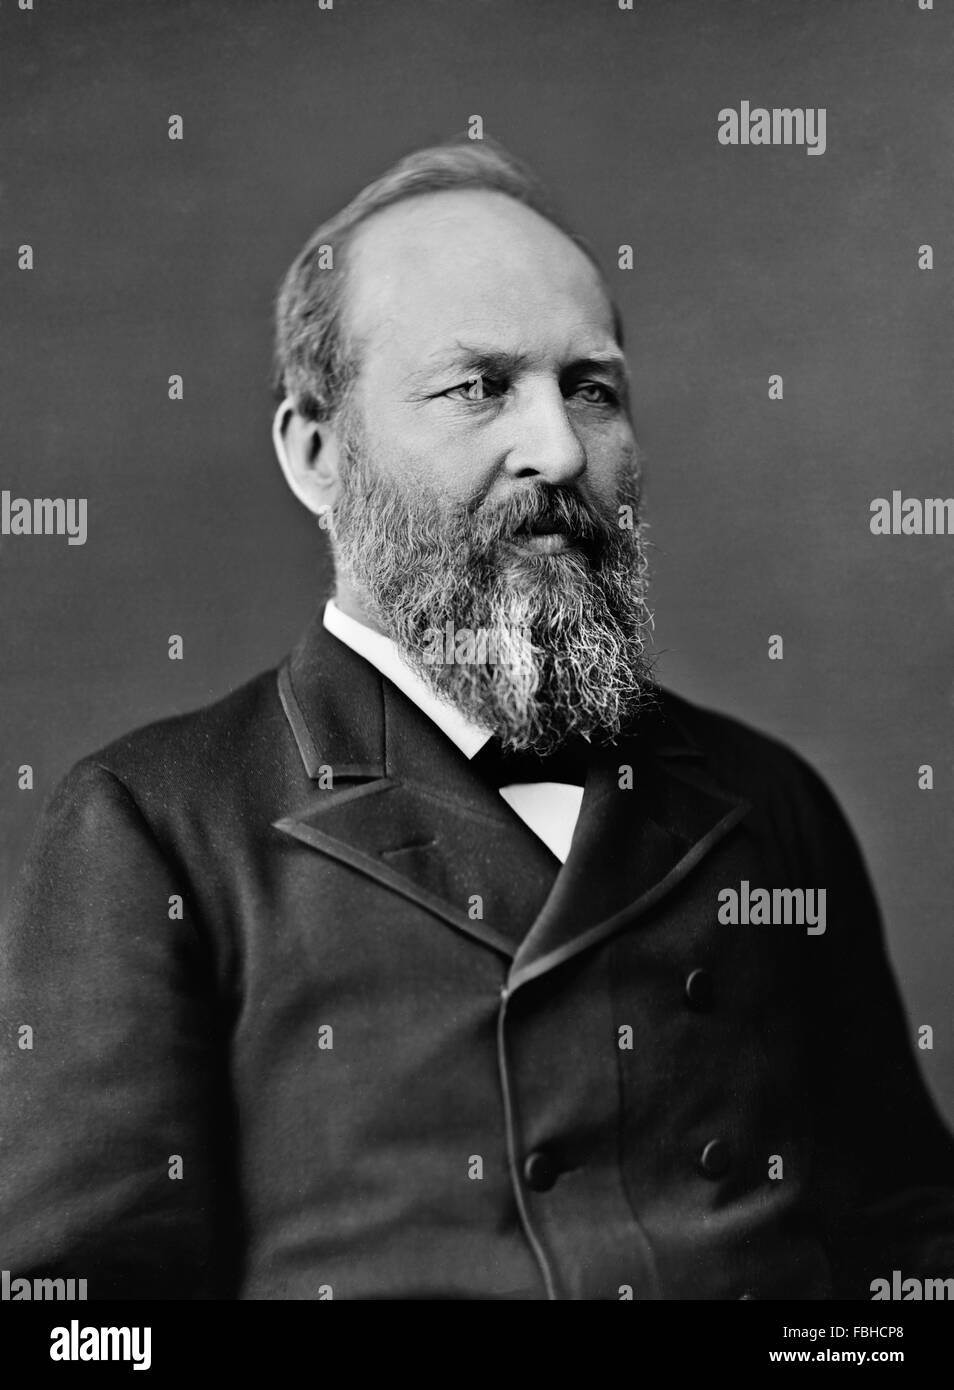 James garfield portrait stock photos james garfield portrait stock